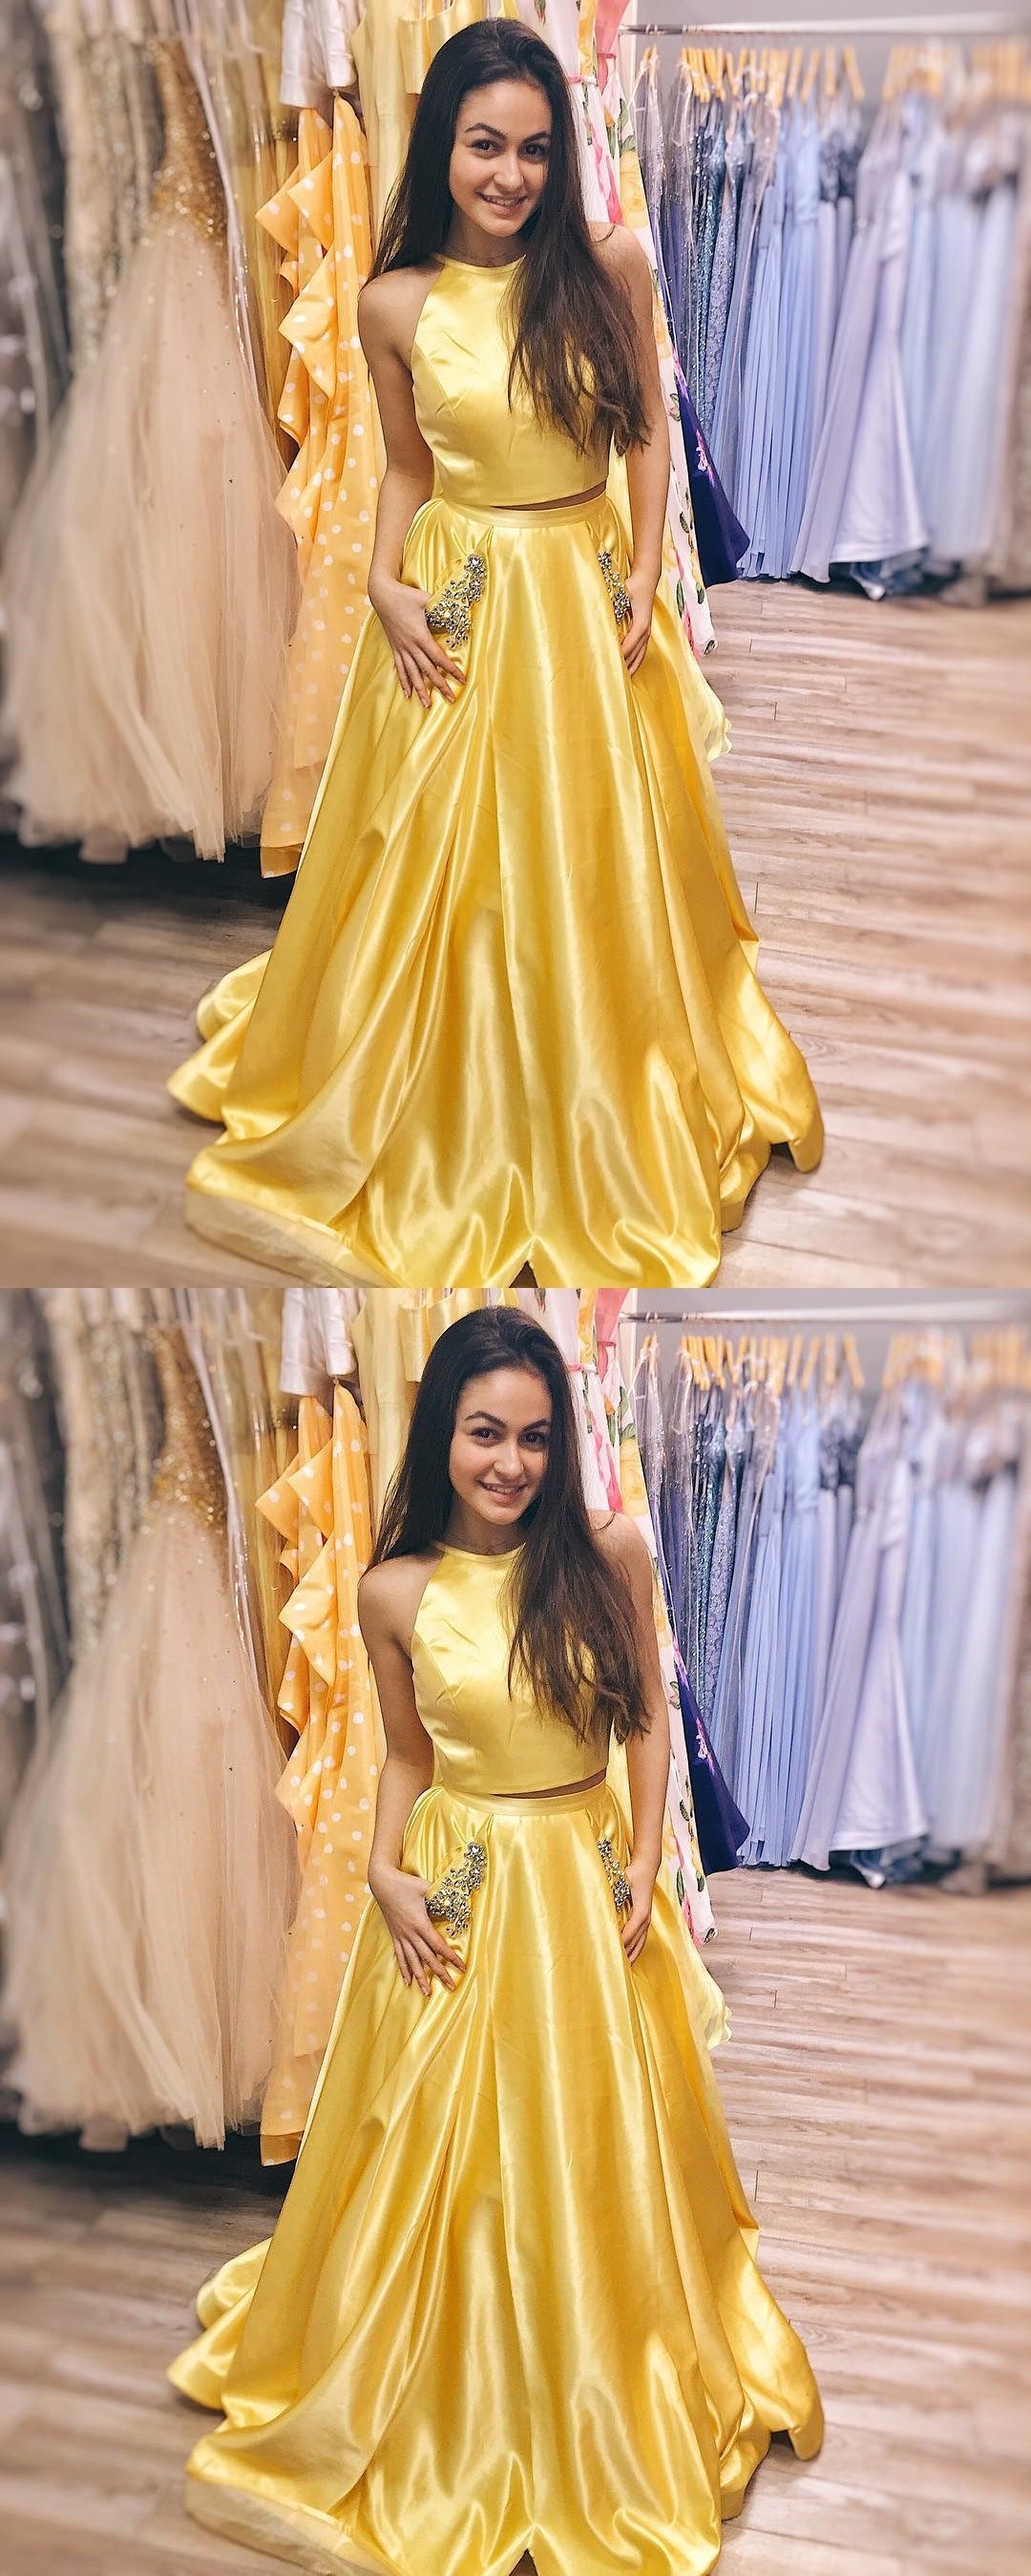 Elegant two pieceshalter yellow long prom dress with pockets